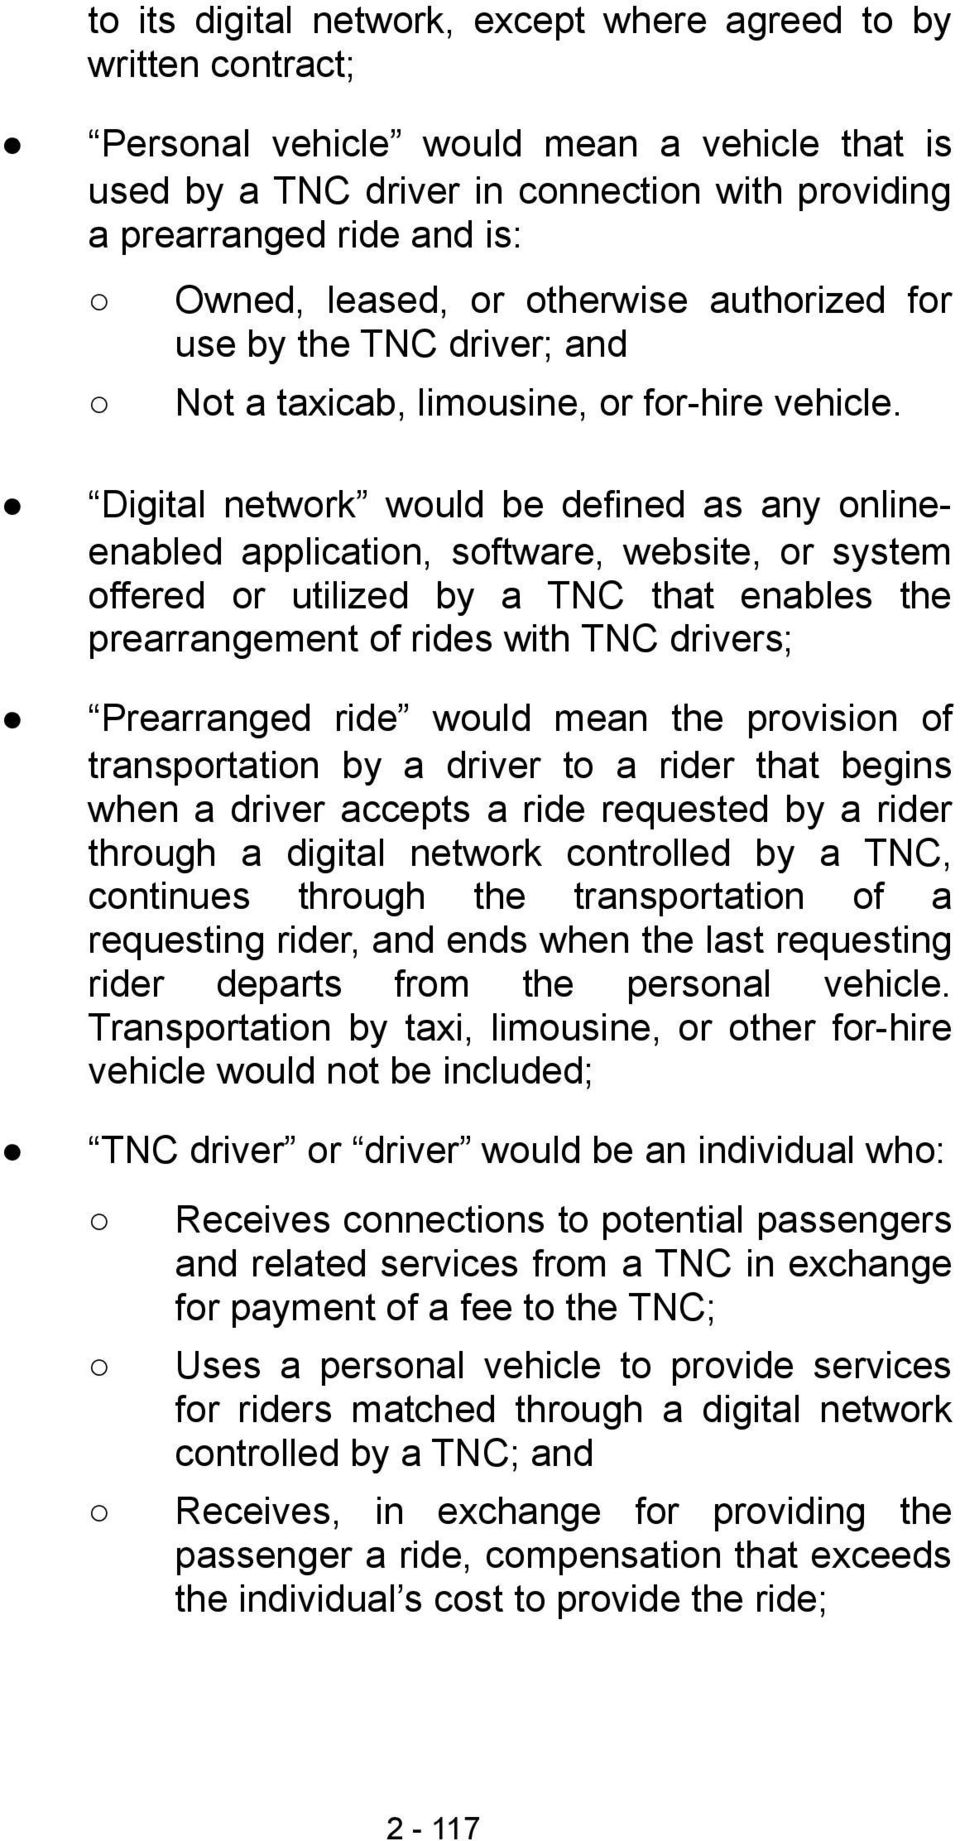 Digital network would be defined as any onlineenabled application, software, website, or system offered or utilized by a TNC that enables the prearrangement of rides with TNC drivers; Prearranged